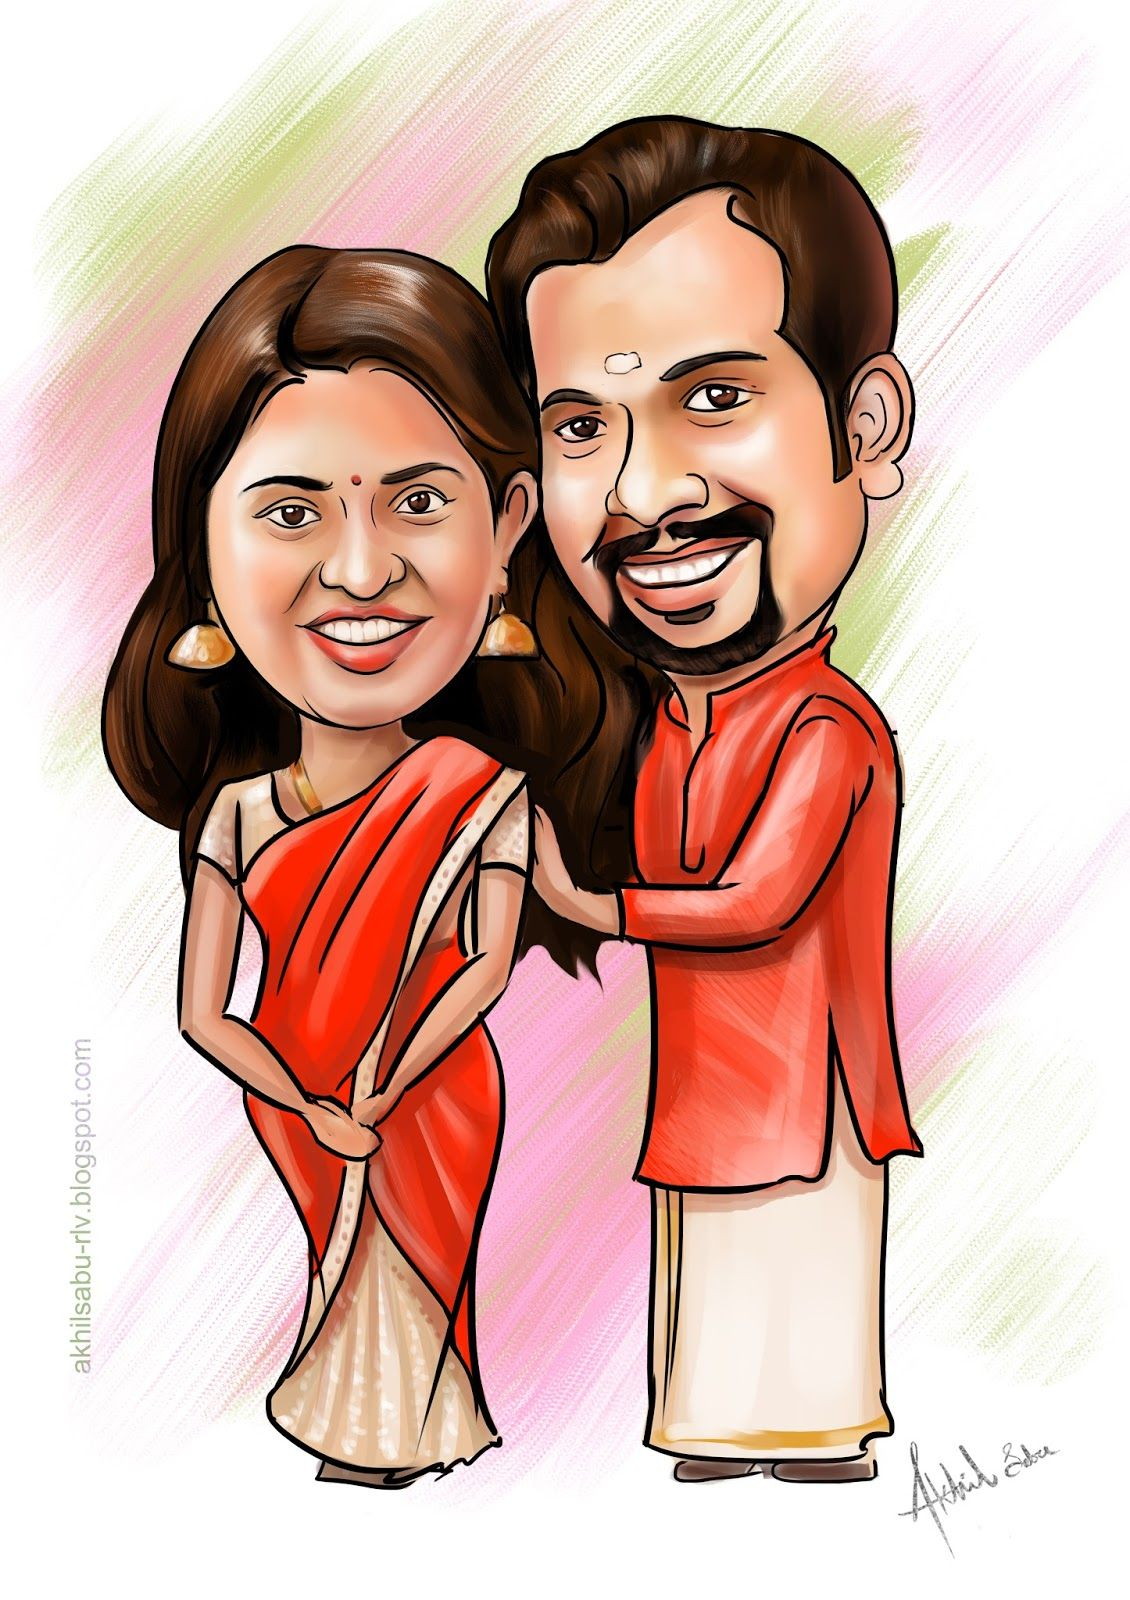 Wedding Caricatures Wedding caricature, Caricature